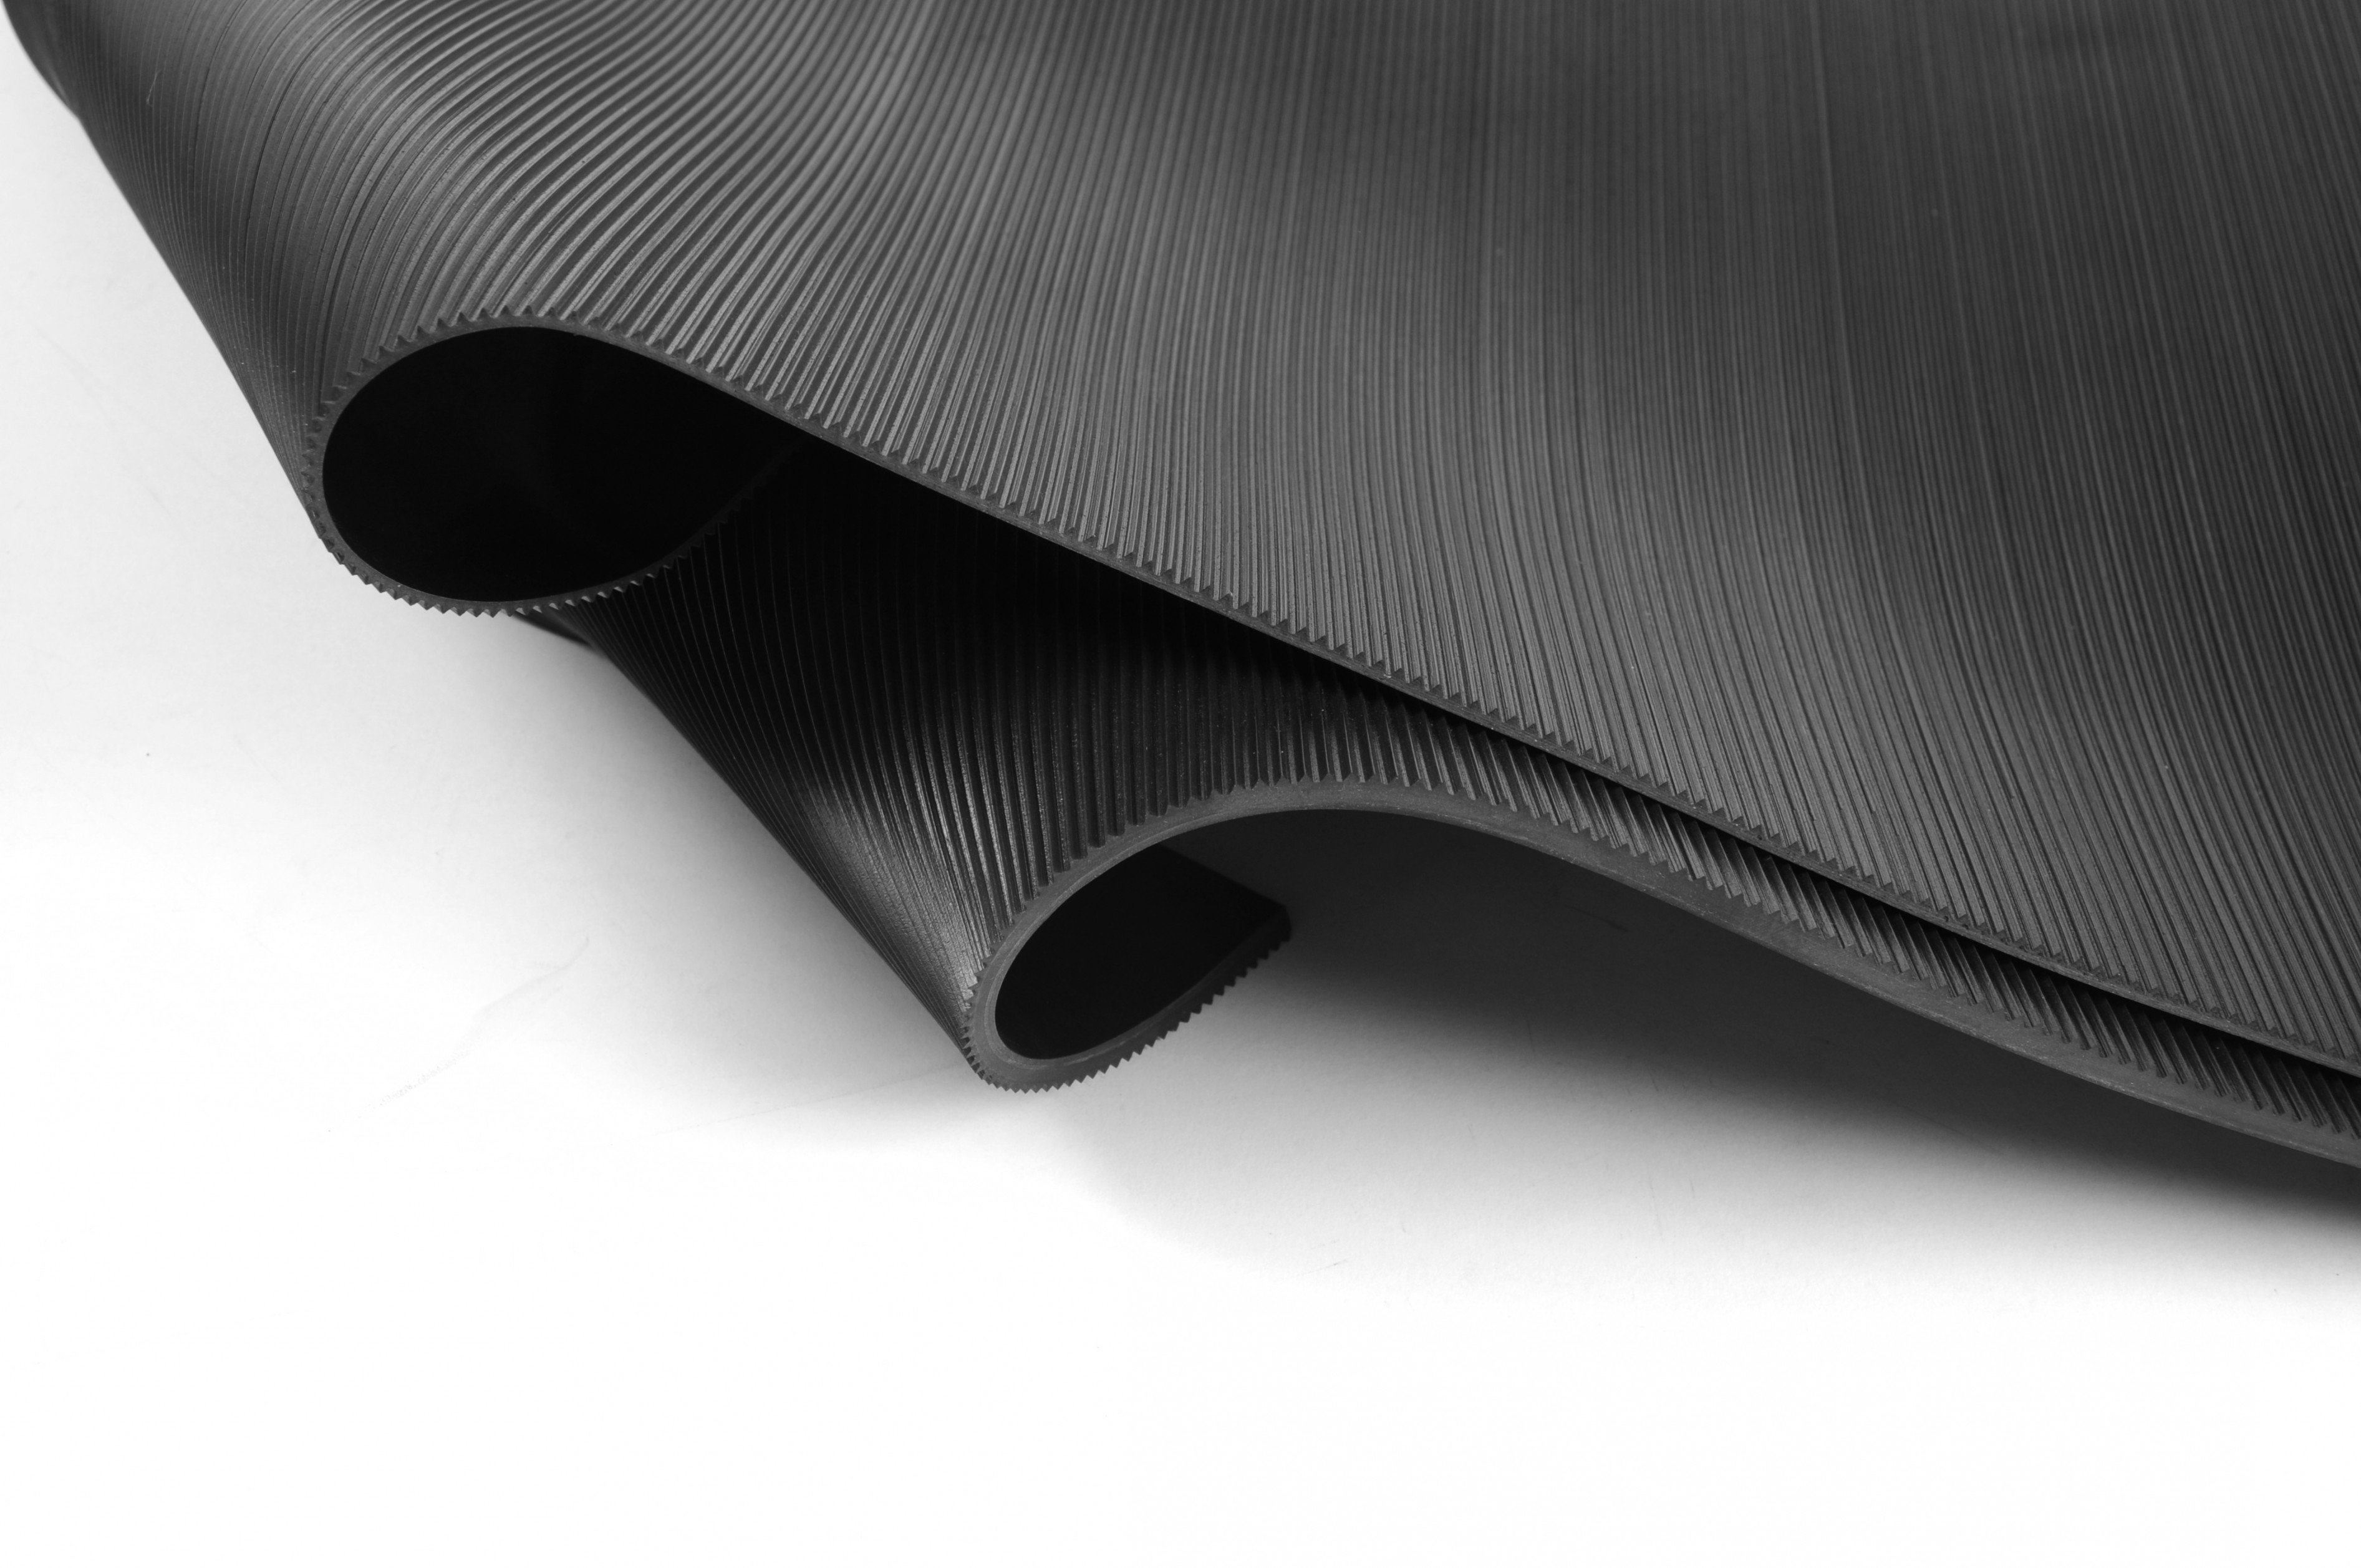 Side Profile of Double Rolled Corrugated Rubber Mat